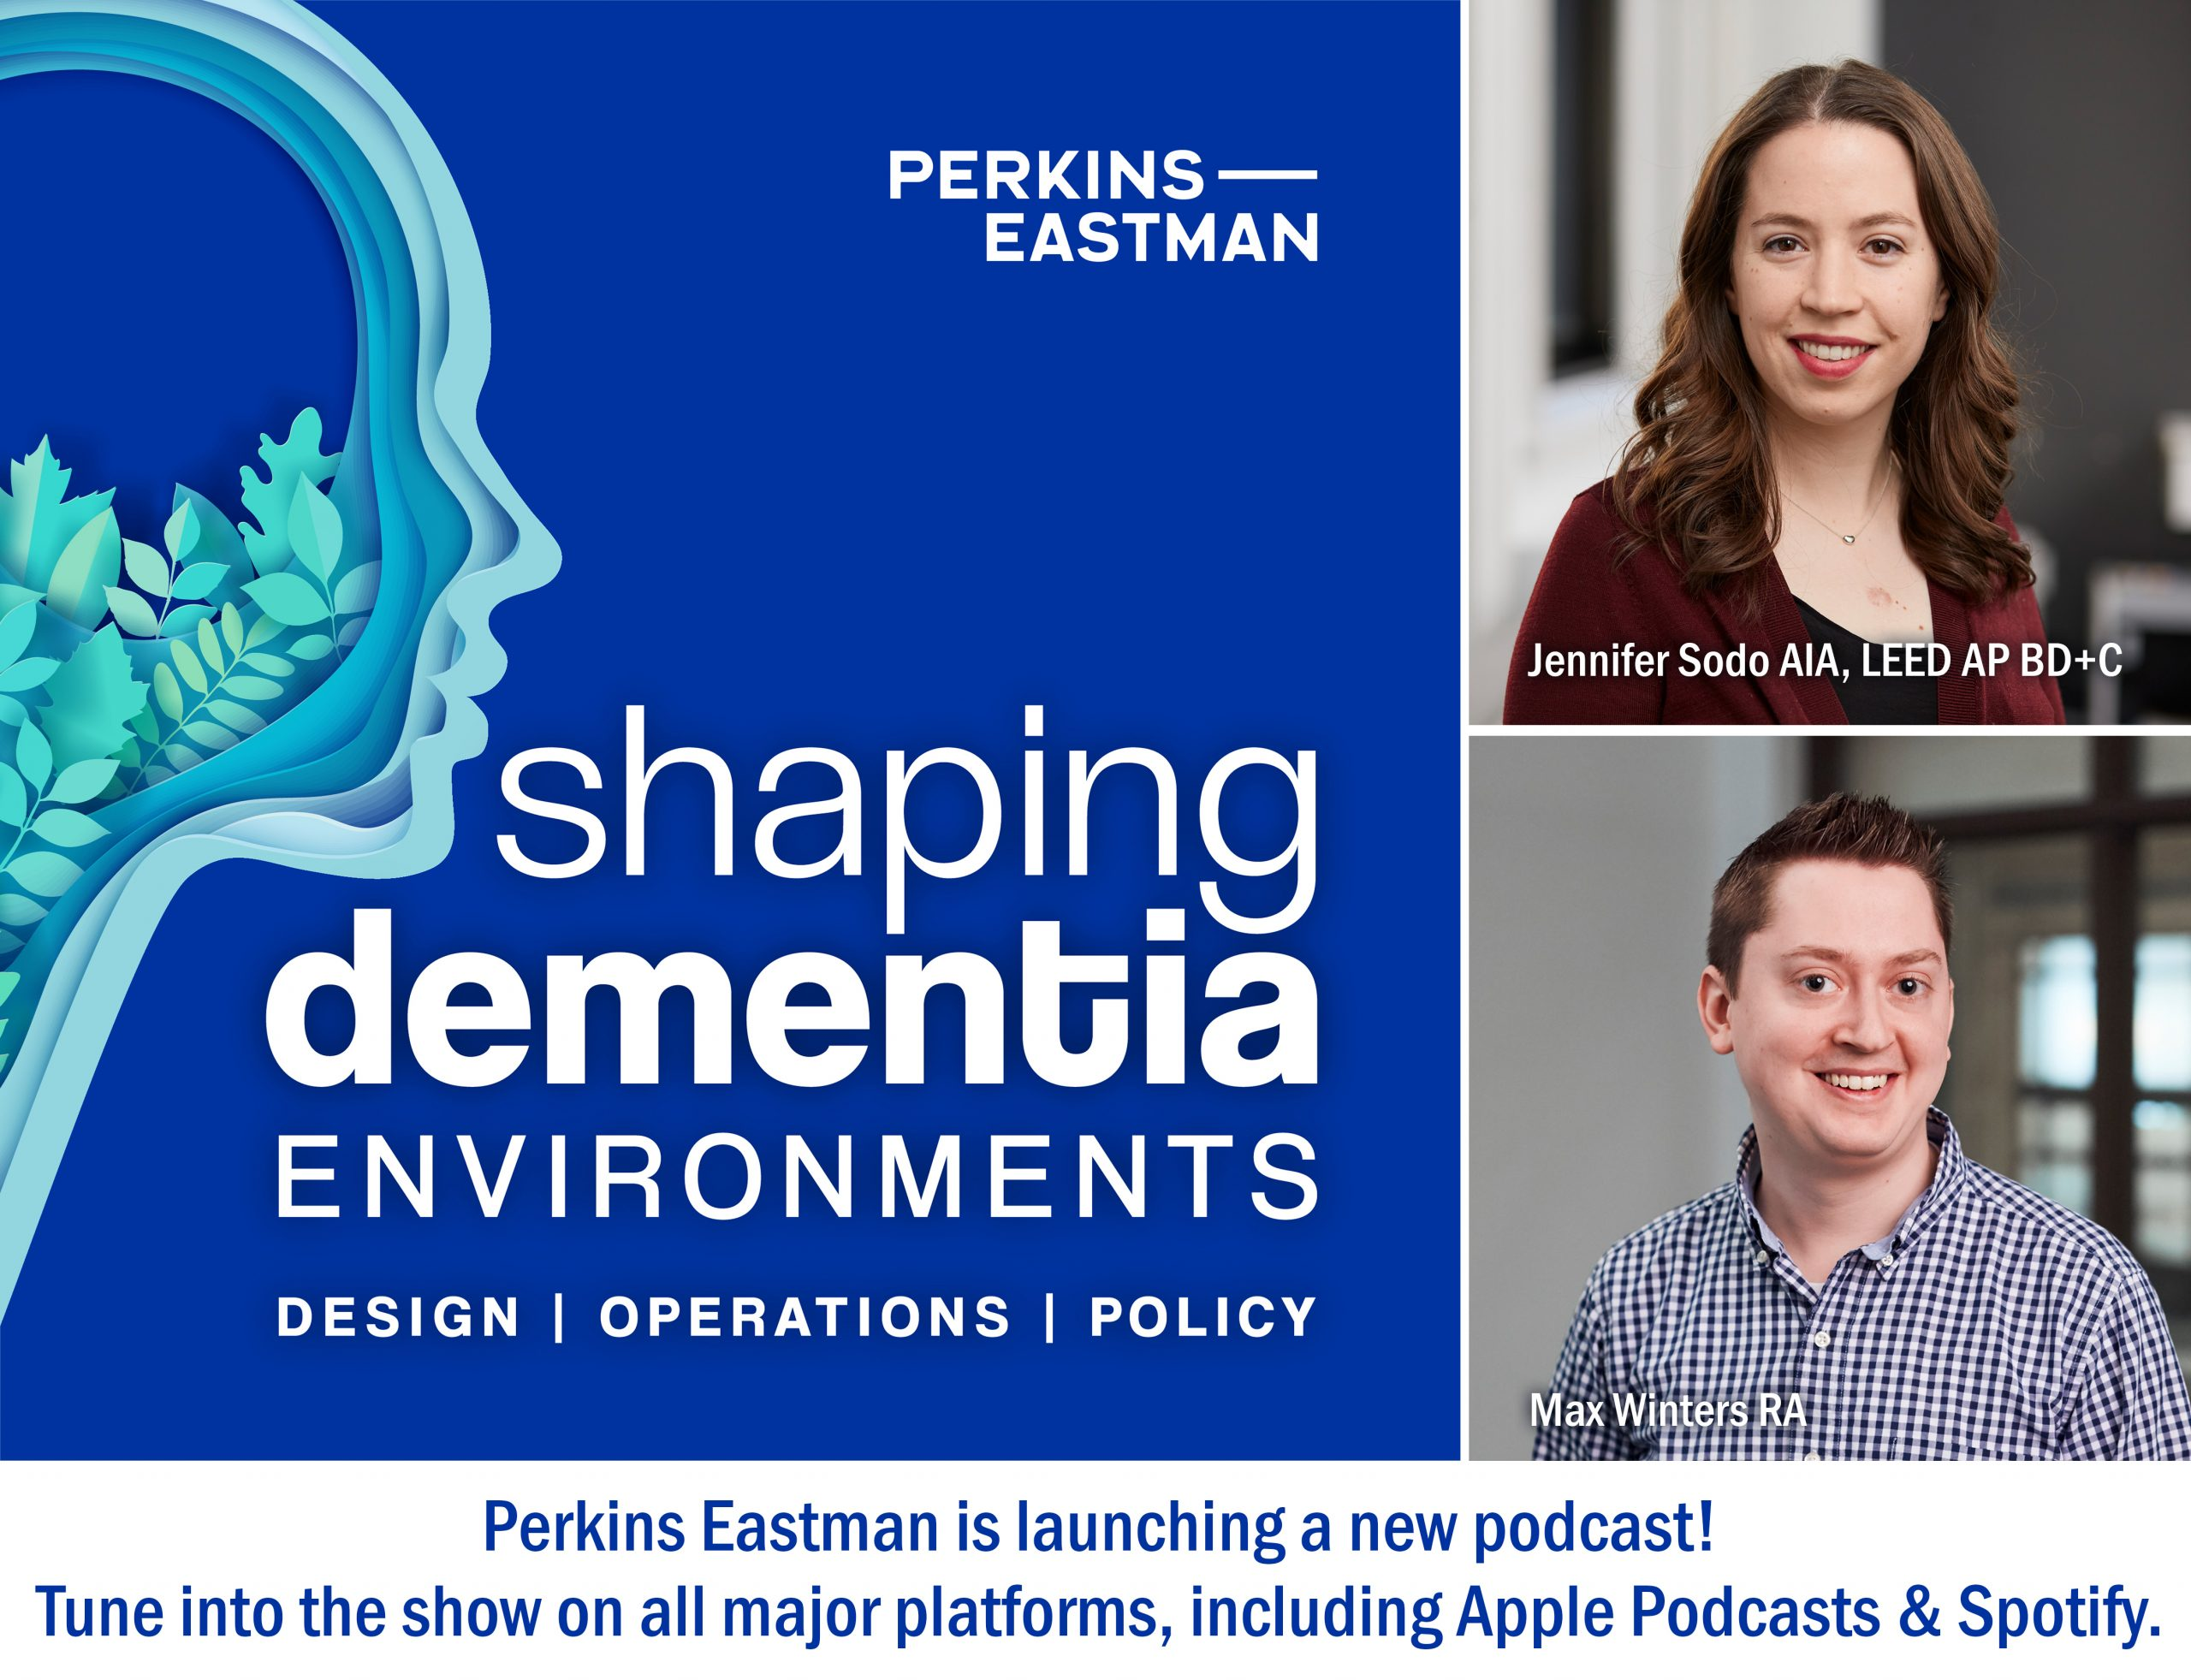 NEW PERKINS EASTMAN PODCAST EXPLORES CHANGES FOR DEMENTIA-CARE ENVIRONMENTS